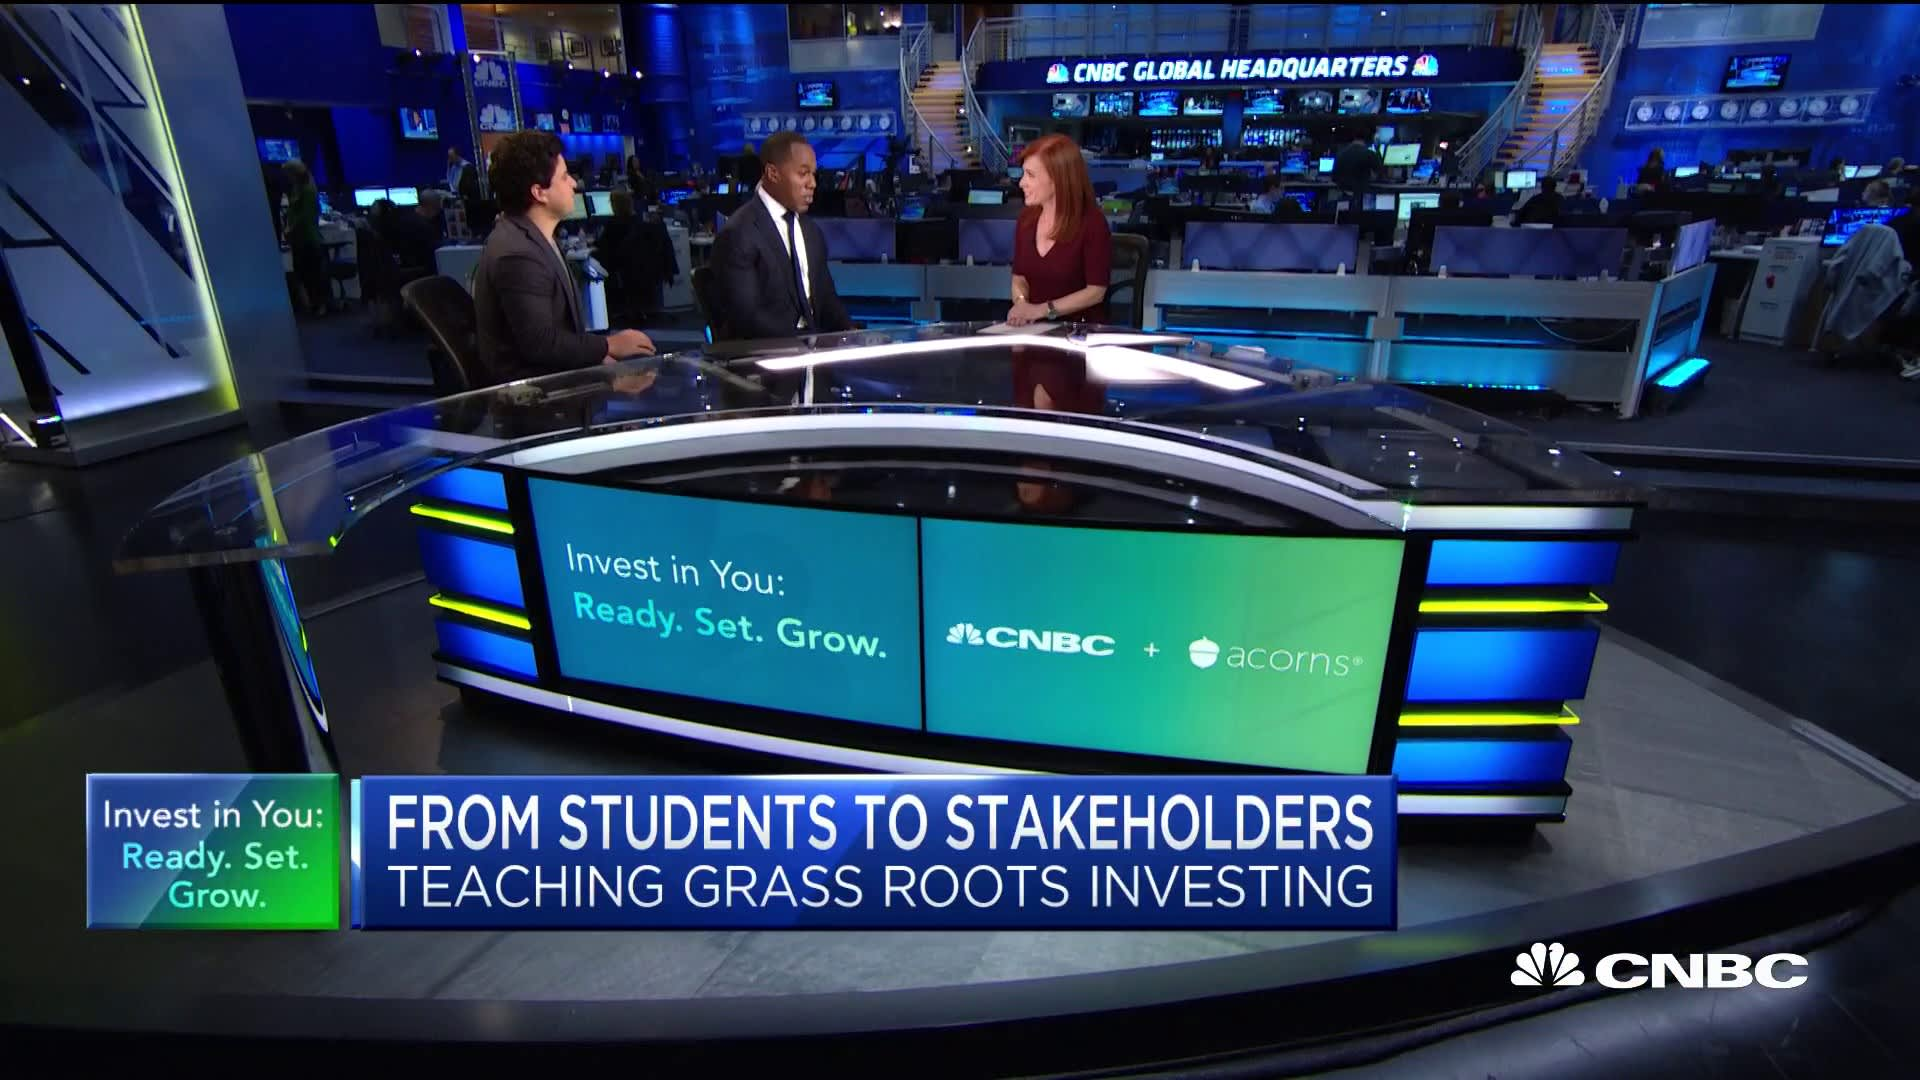 Project Destined and Acorns bring investing education to youth